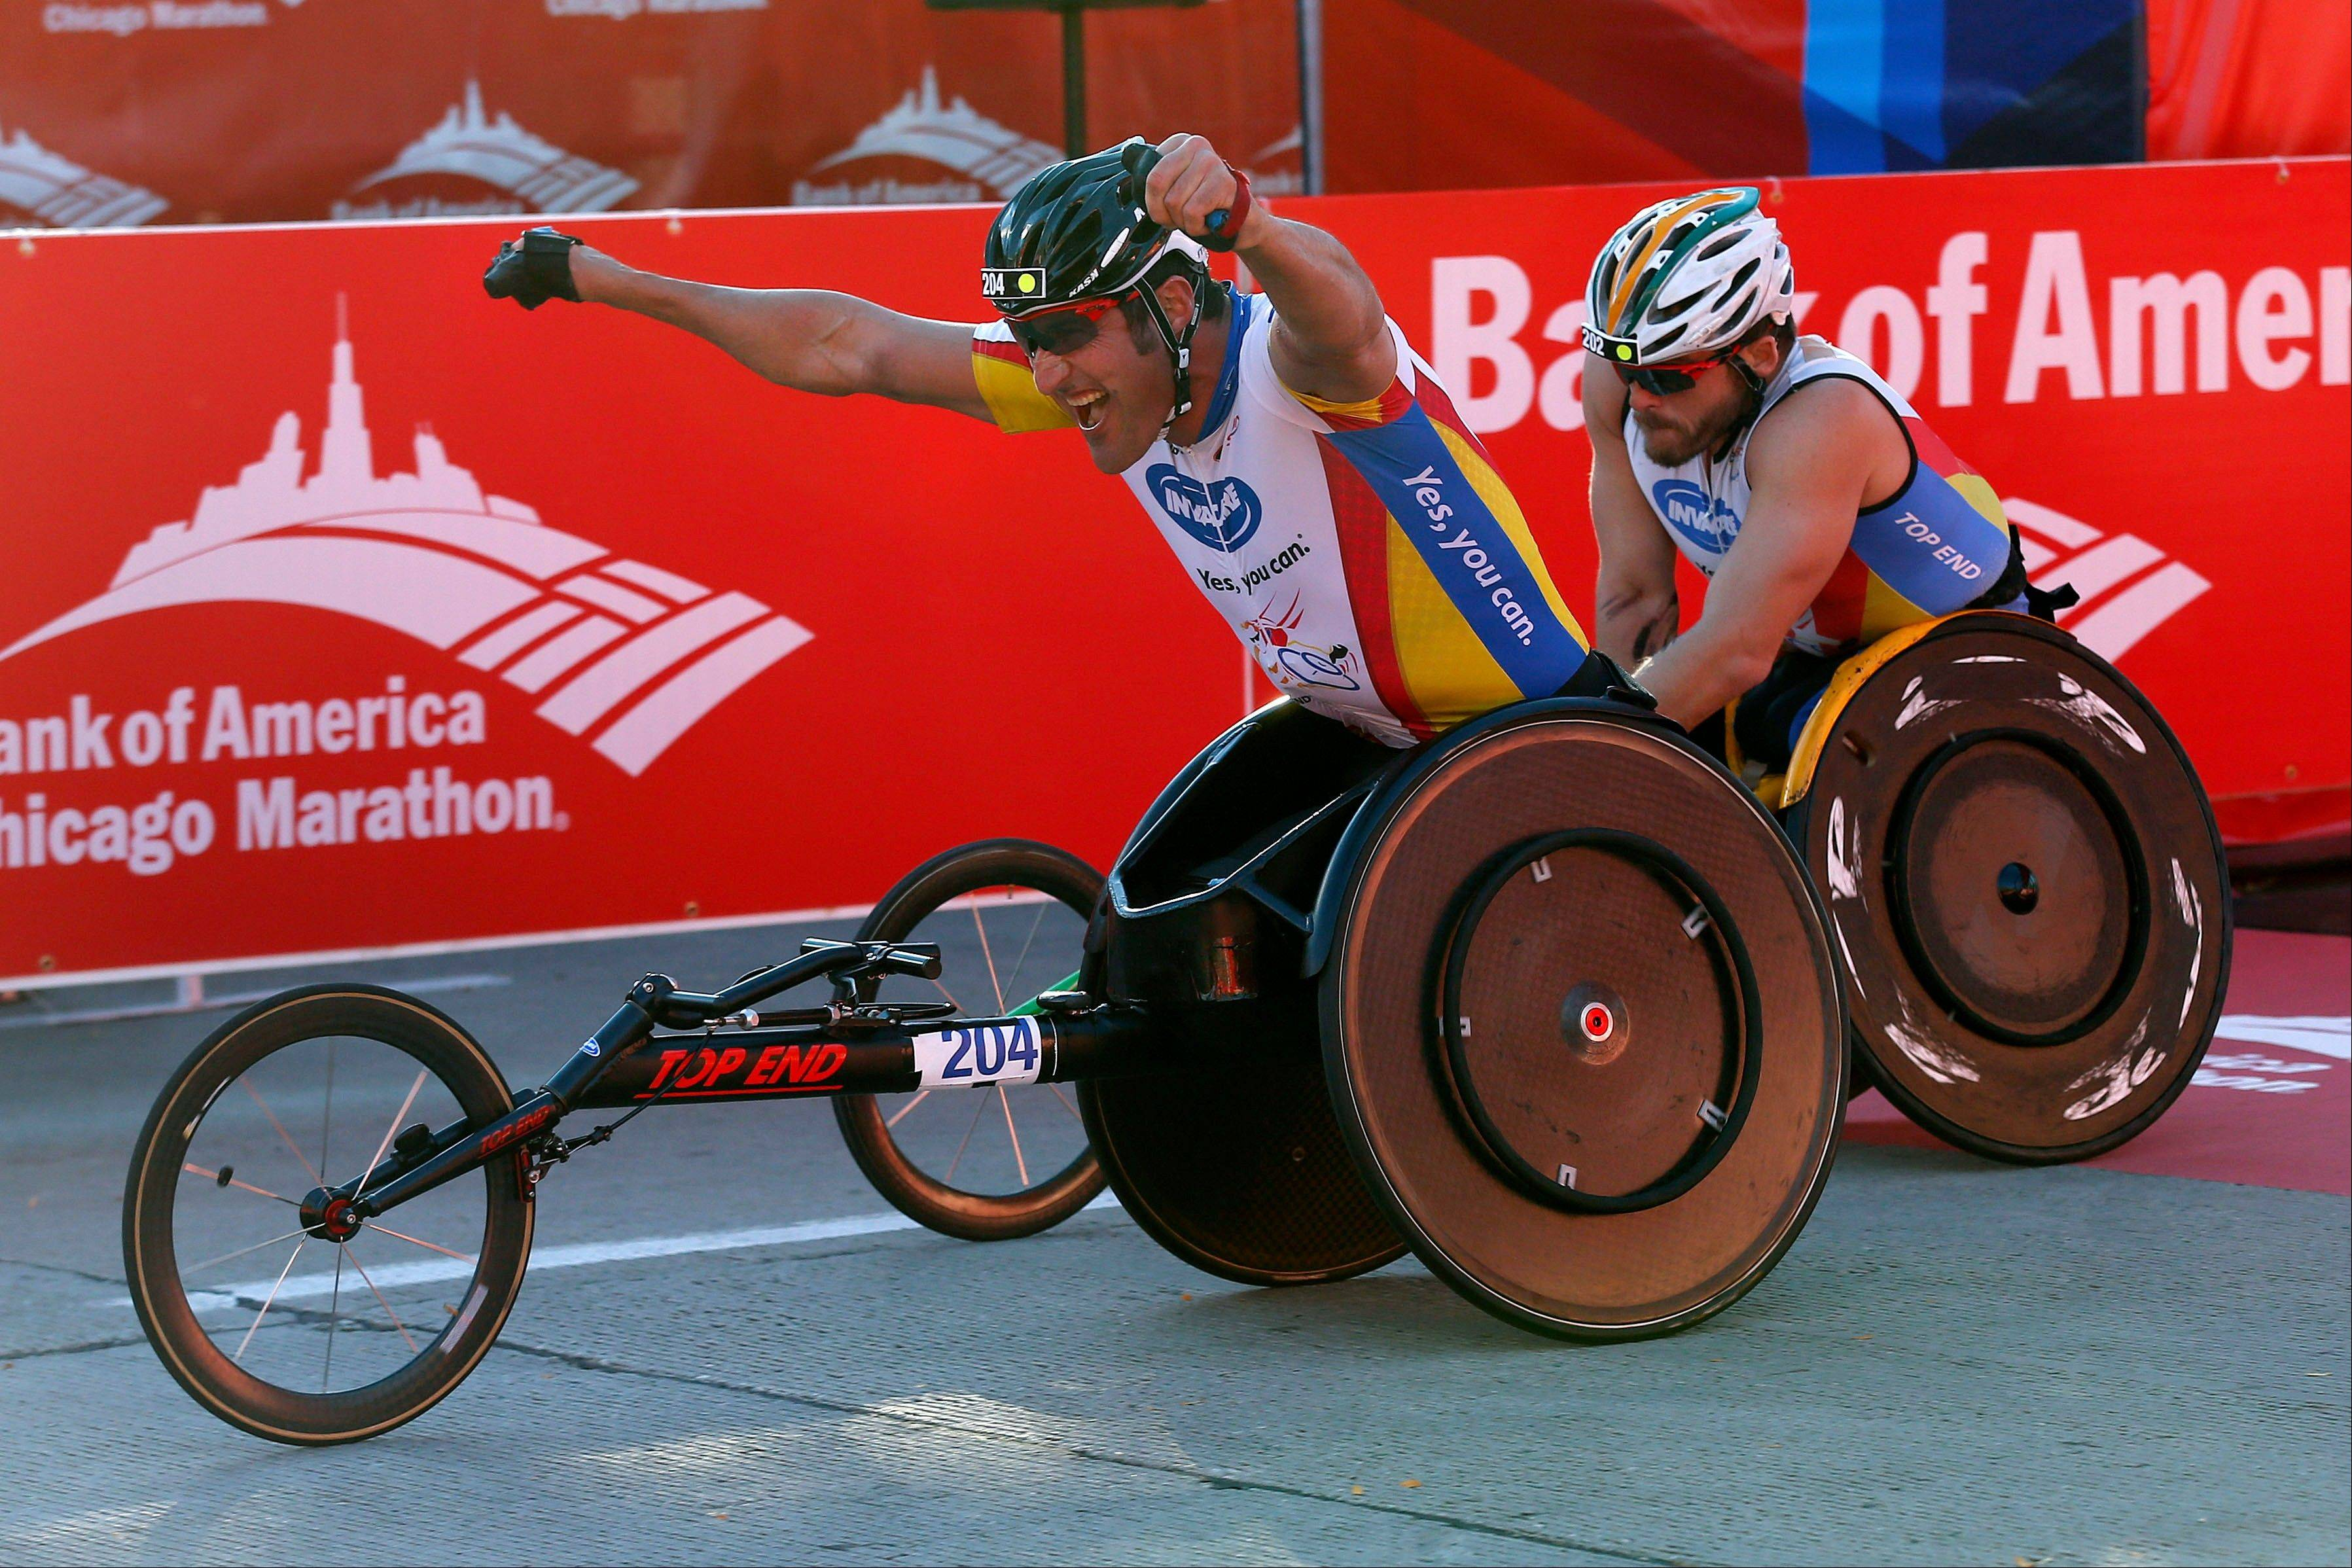 Ernst Van Dyke, left, of South Africa, edges out Kurt Fearnley, right, of Australia, to win the men's wheelchair division during the Chicago Marathon on Sunday, Oct. 13, 2013, in Chicago.